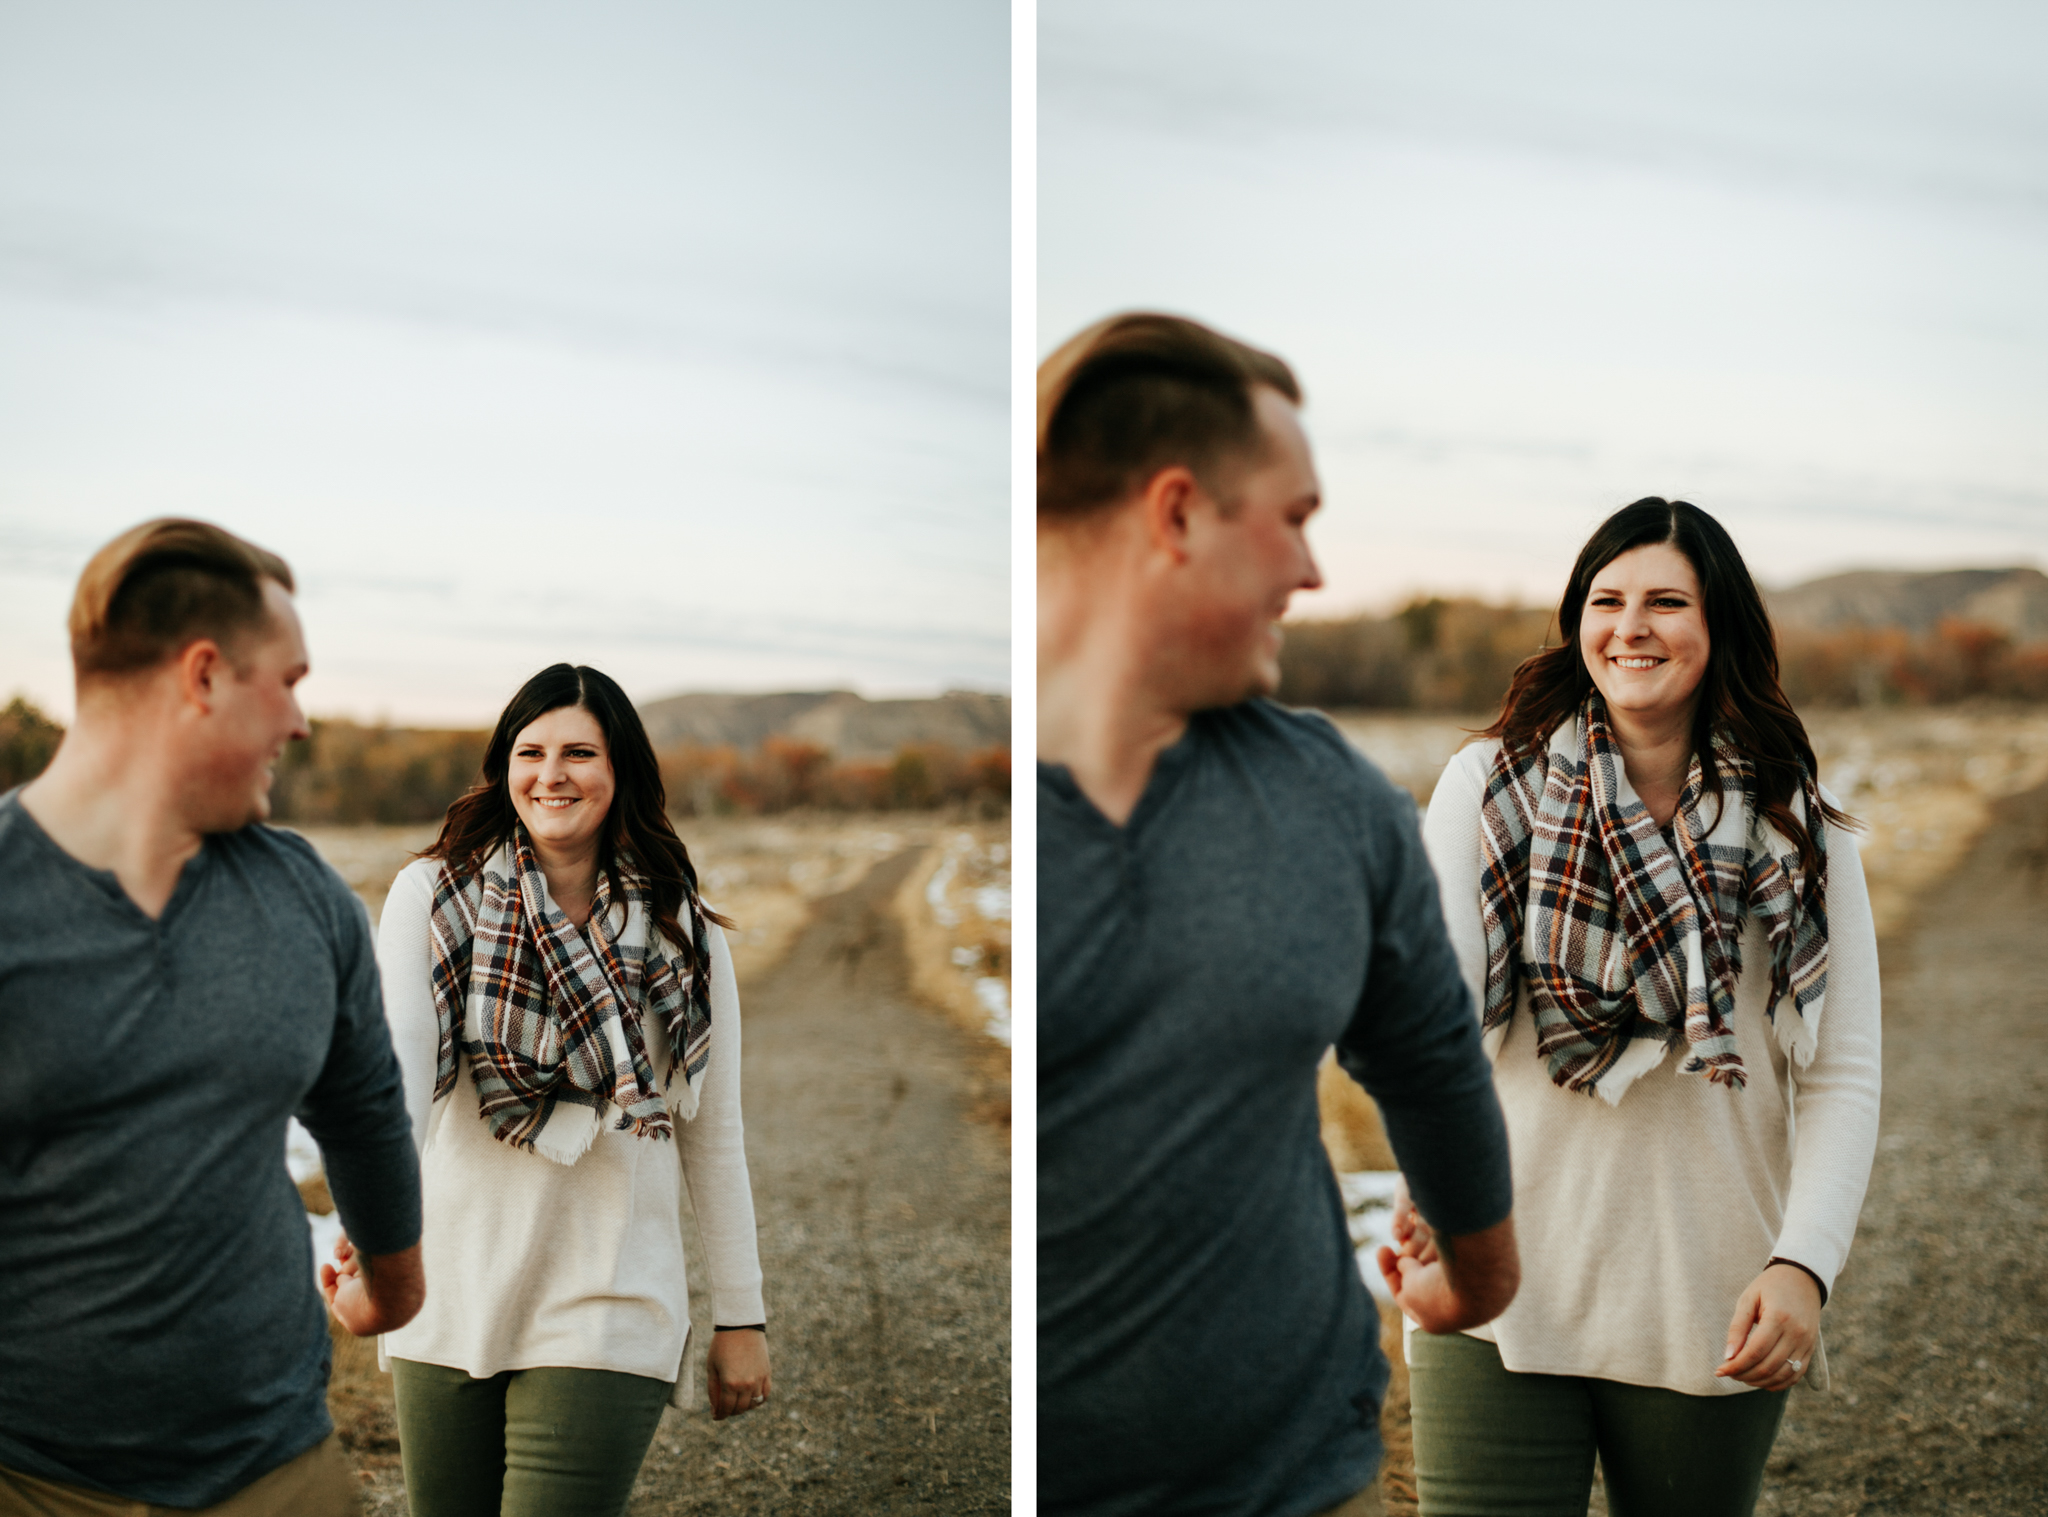 lethbridge-photographer-love-and-be-loved-photography-christy-bryan-fall-autumn-engagement-photo-image-picture-103.jpg